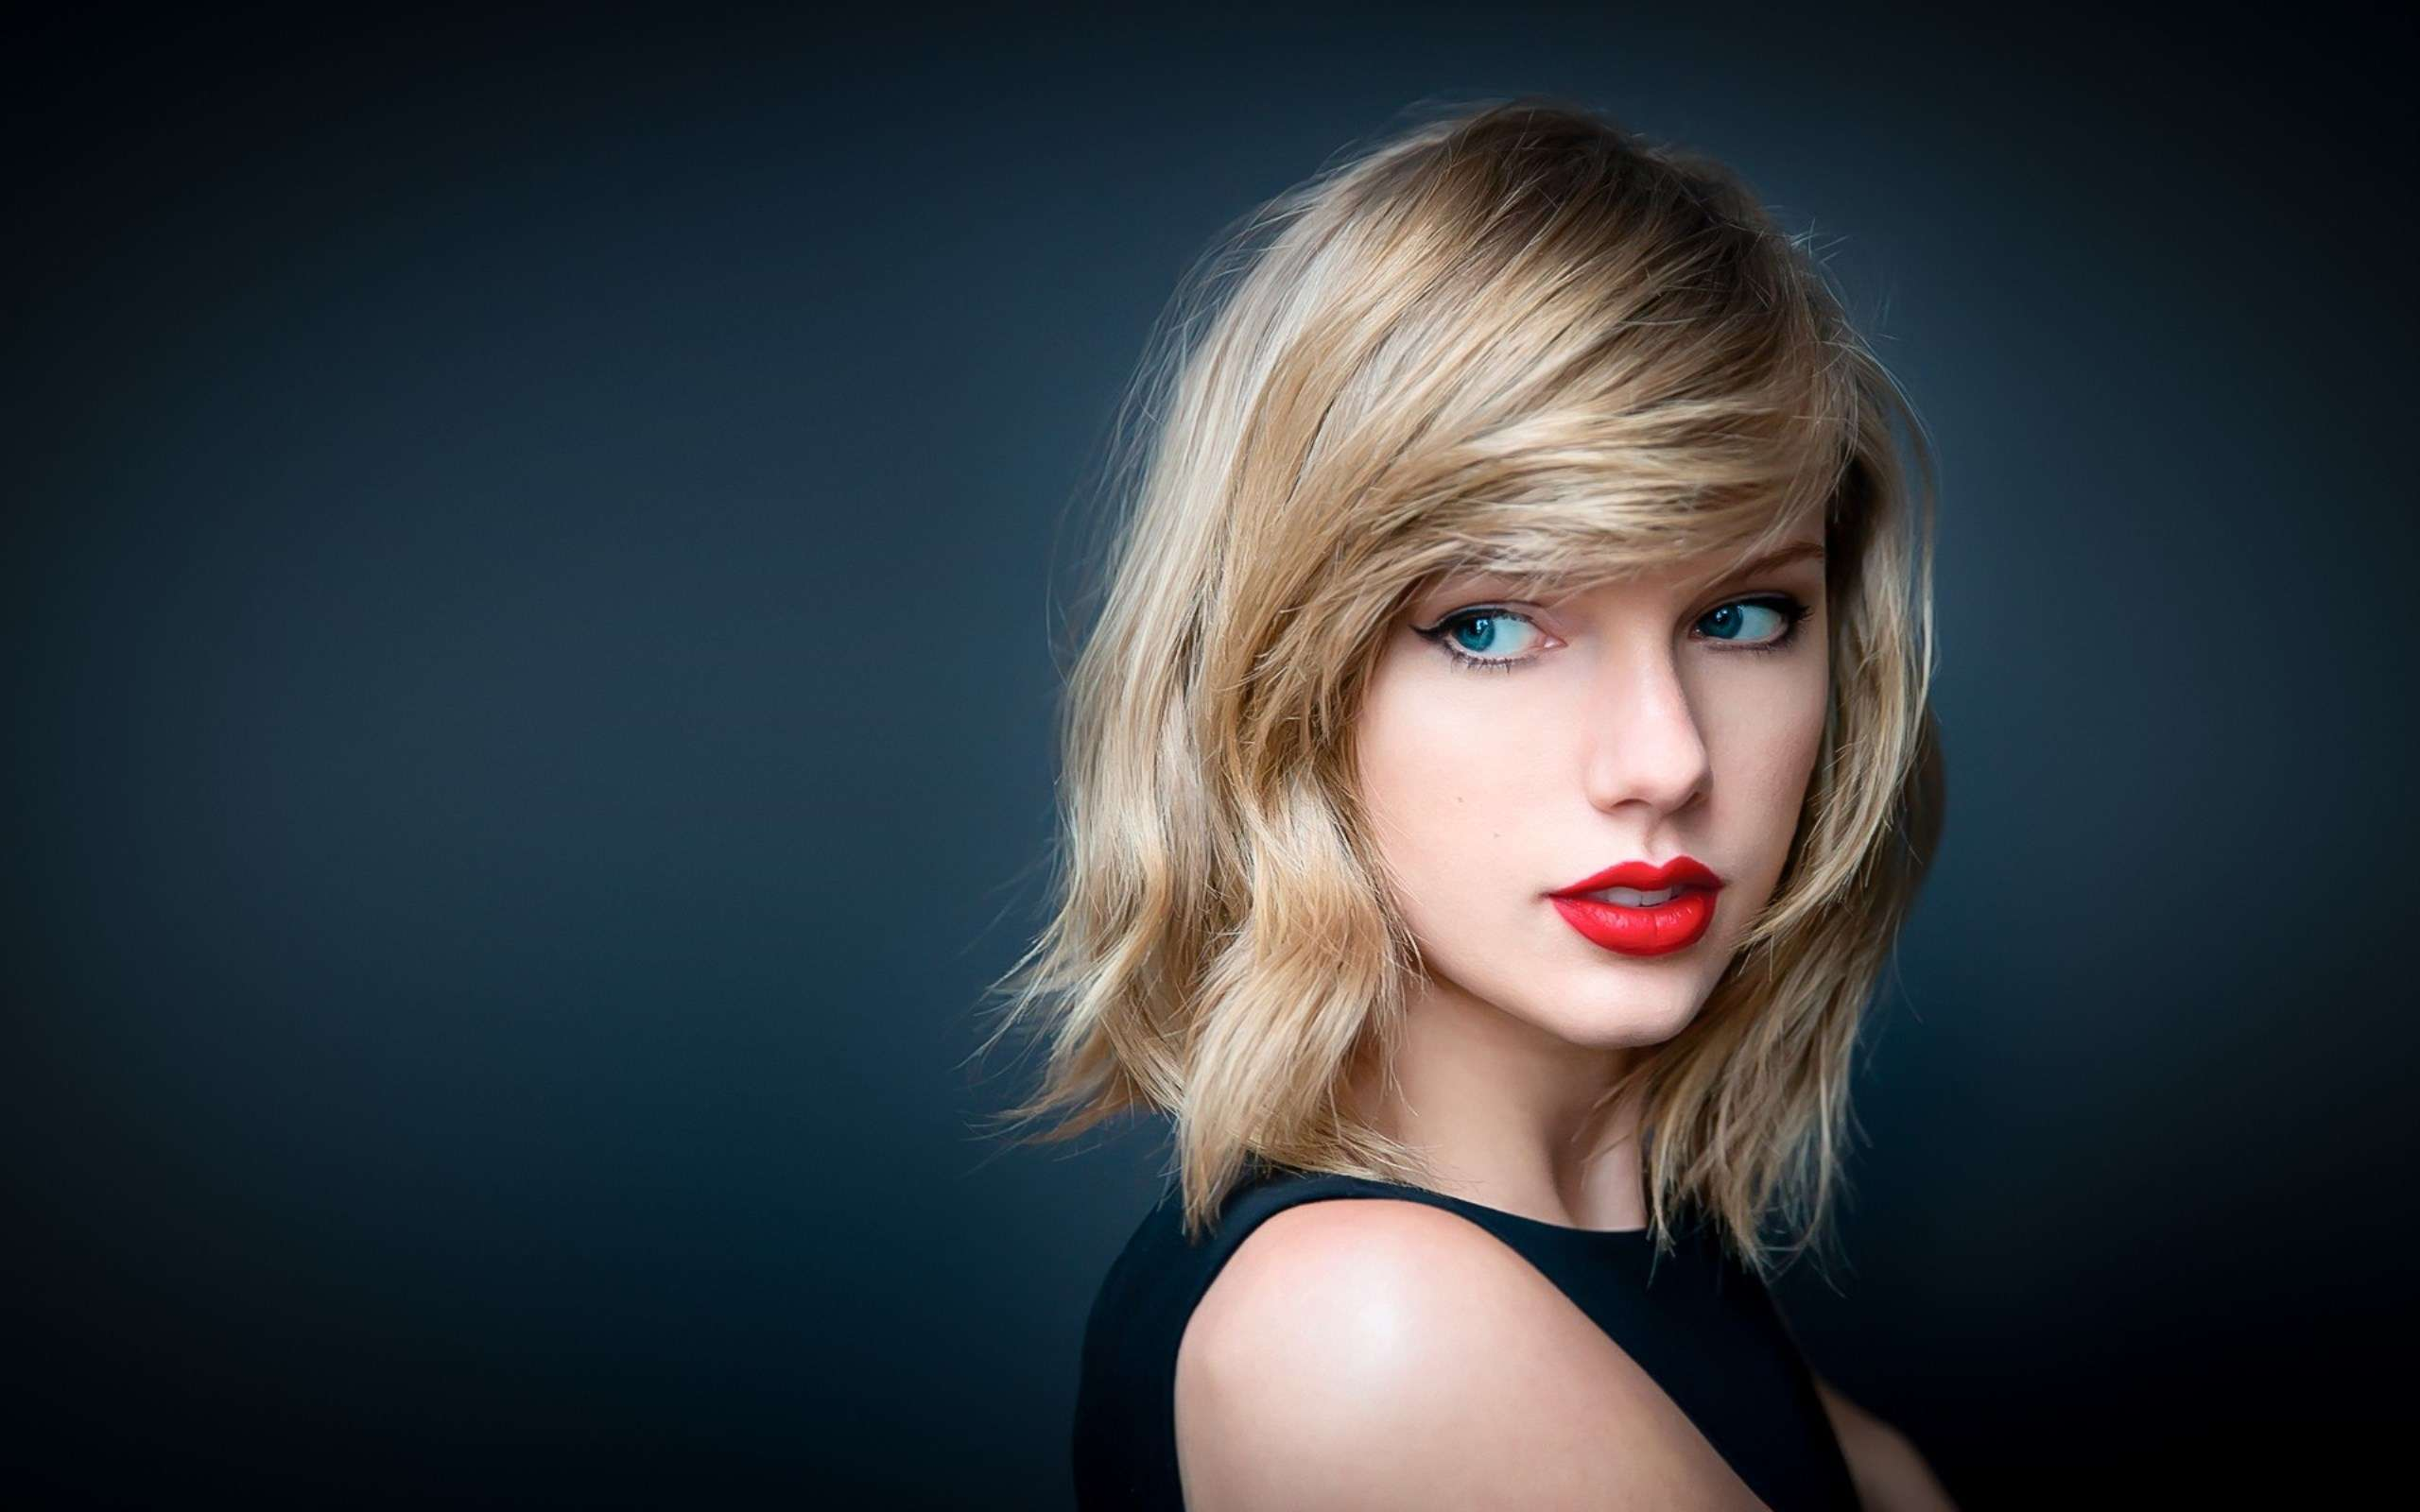 Philosophy's Answers to Taylor Swift's Failed Relationships